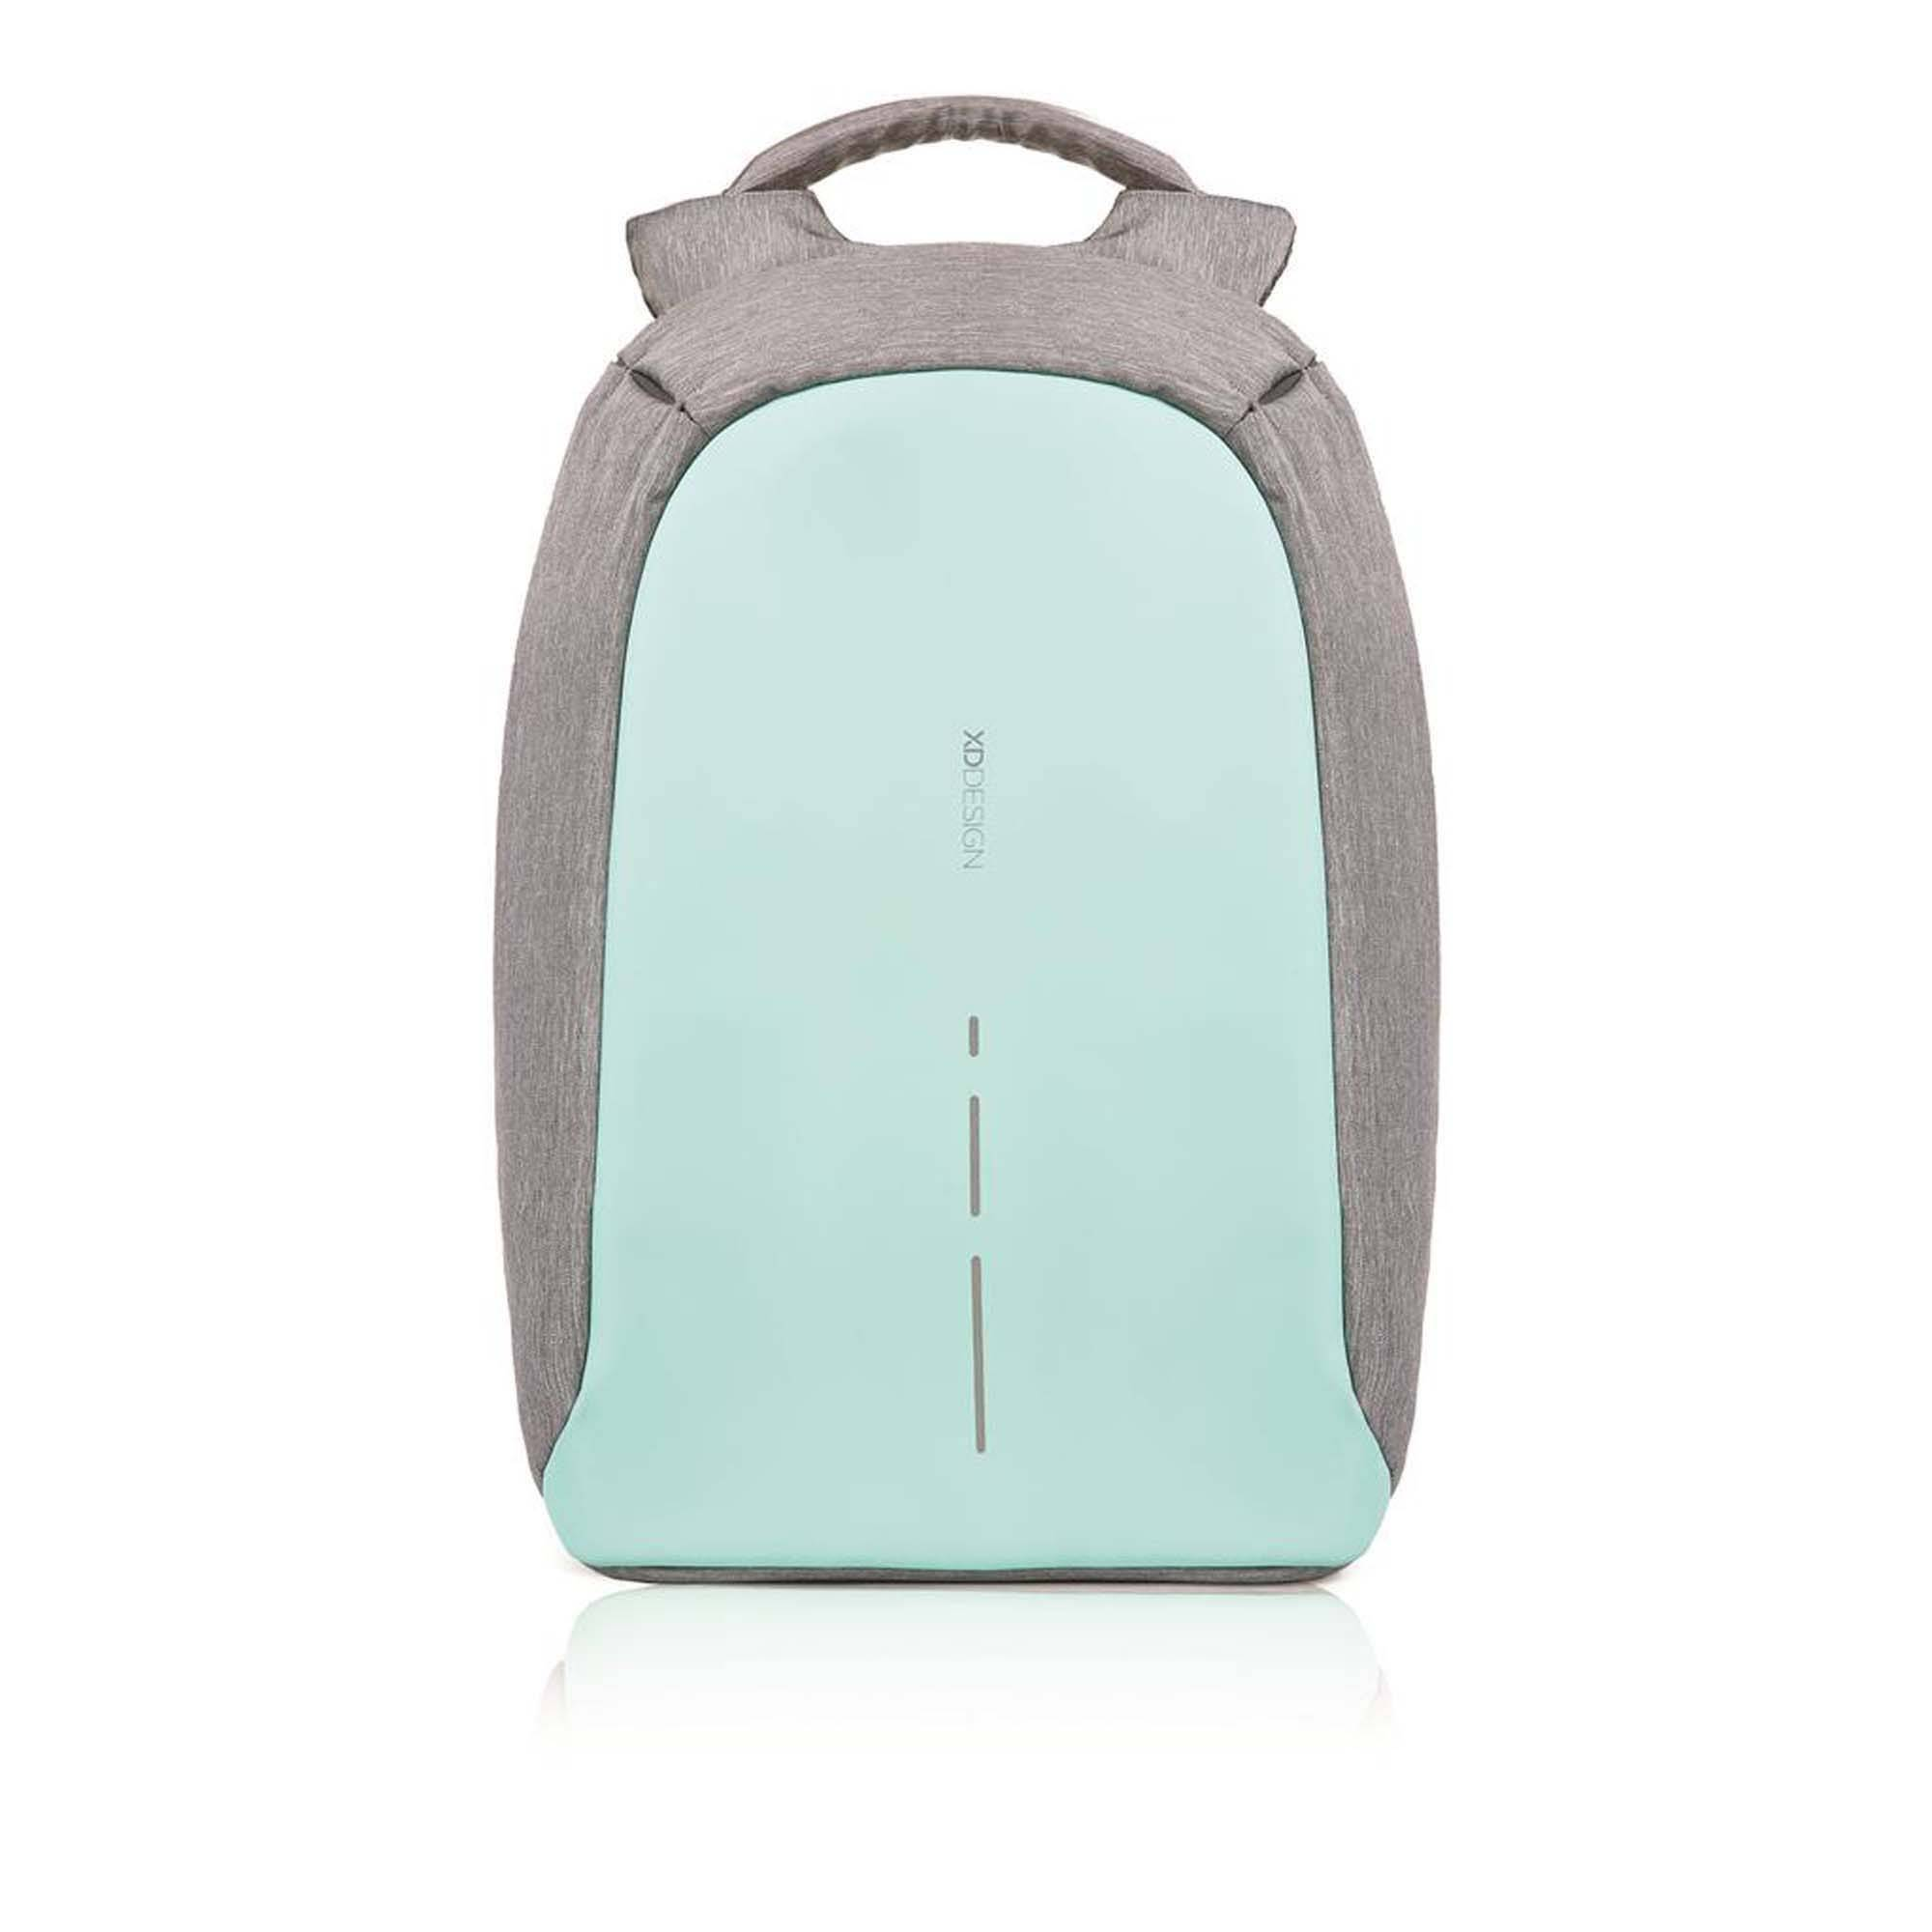 Xd Design Bobby Compact Anti Theft Backpack